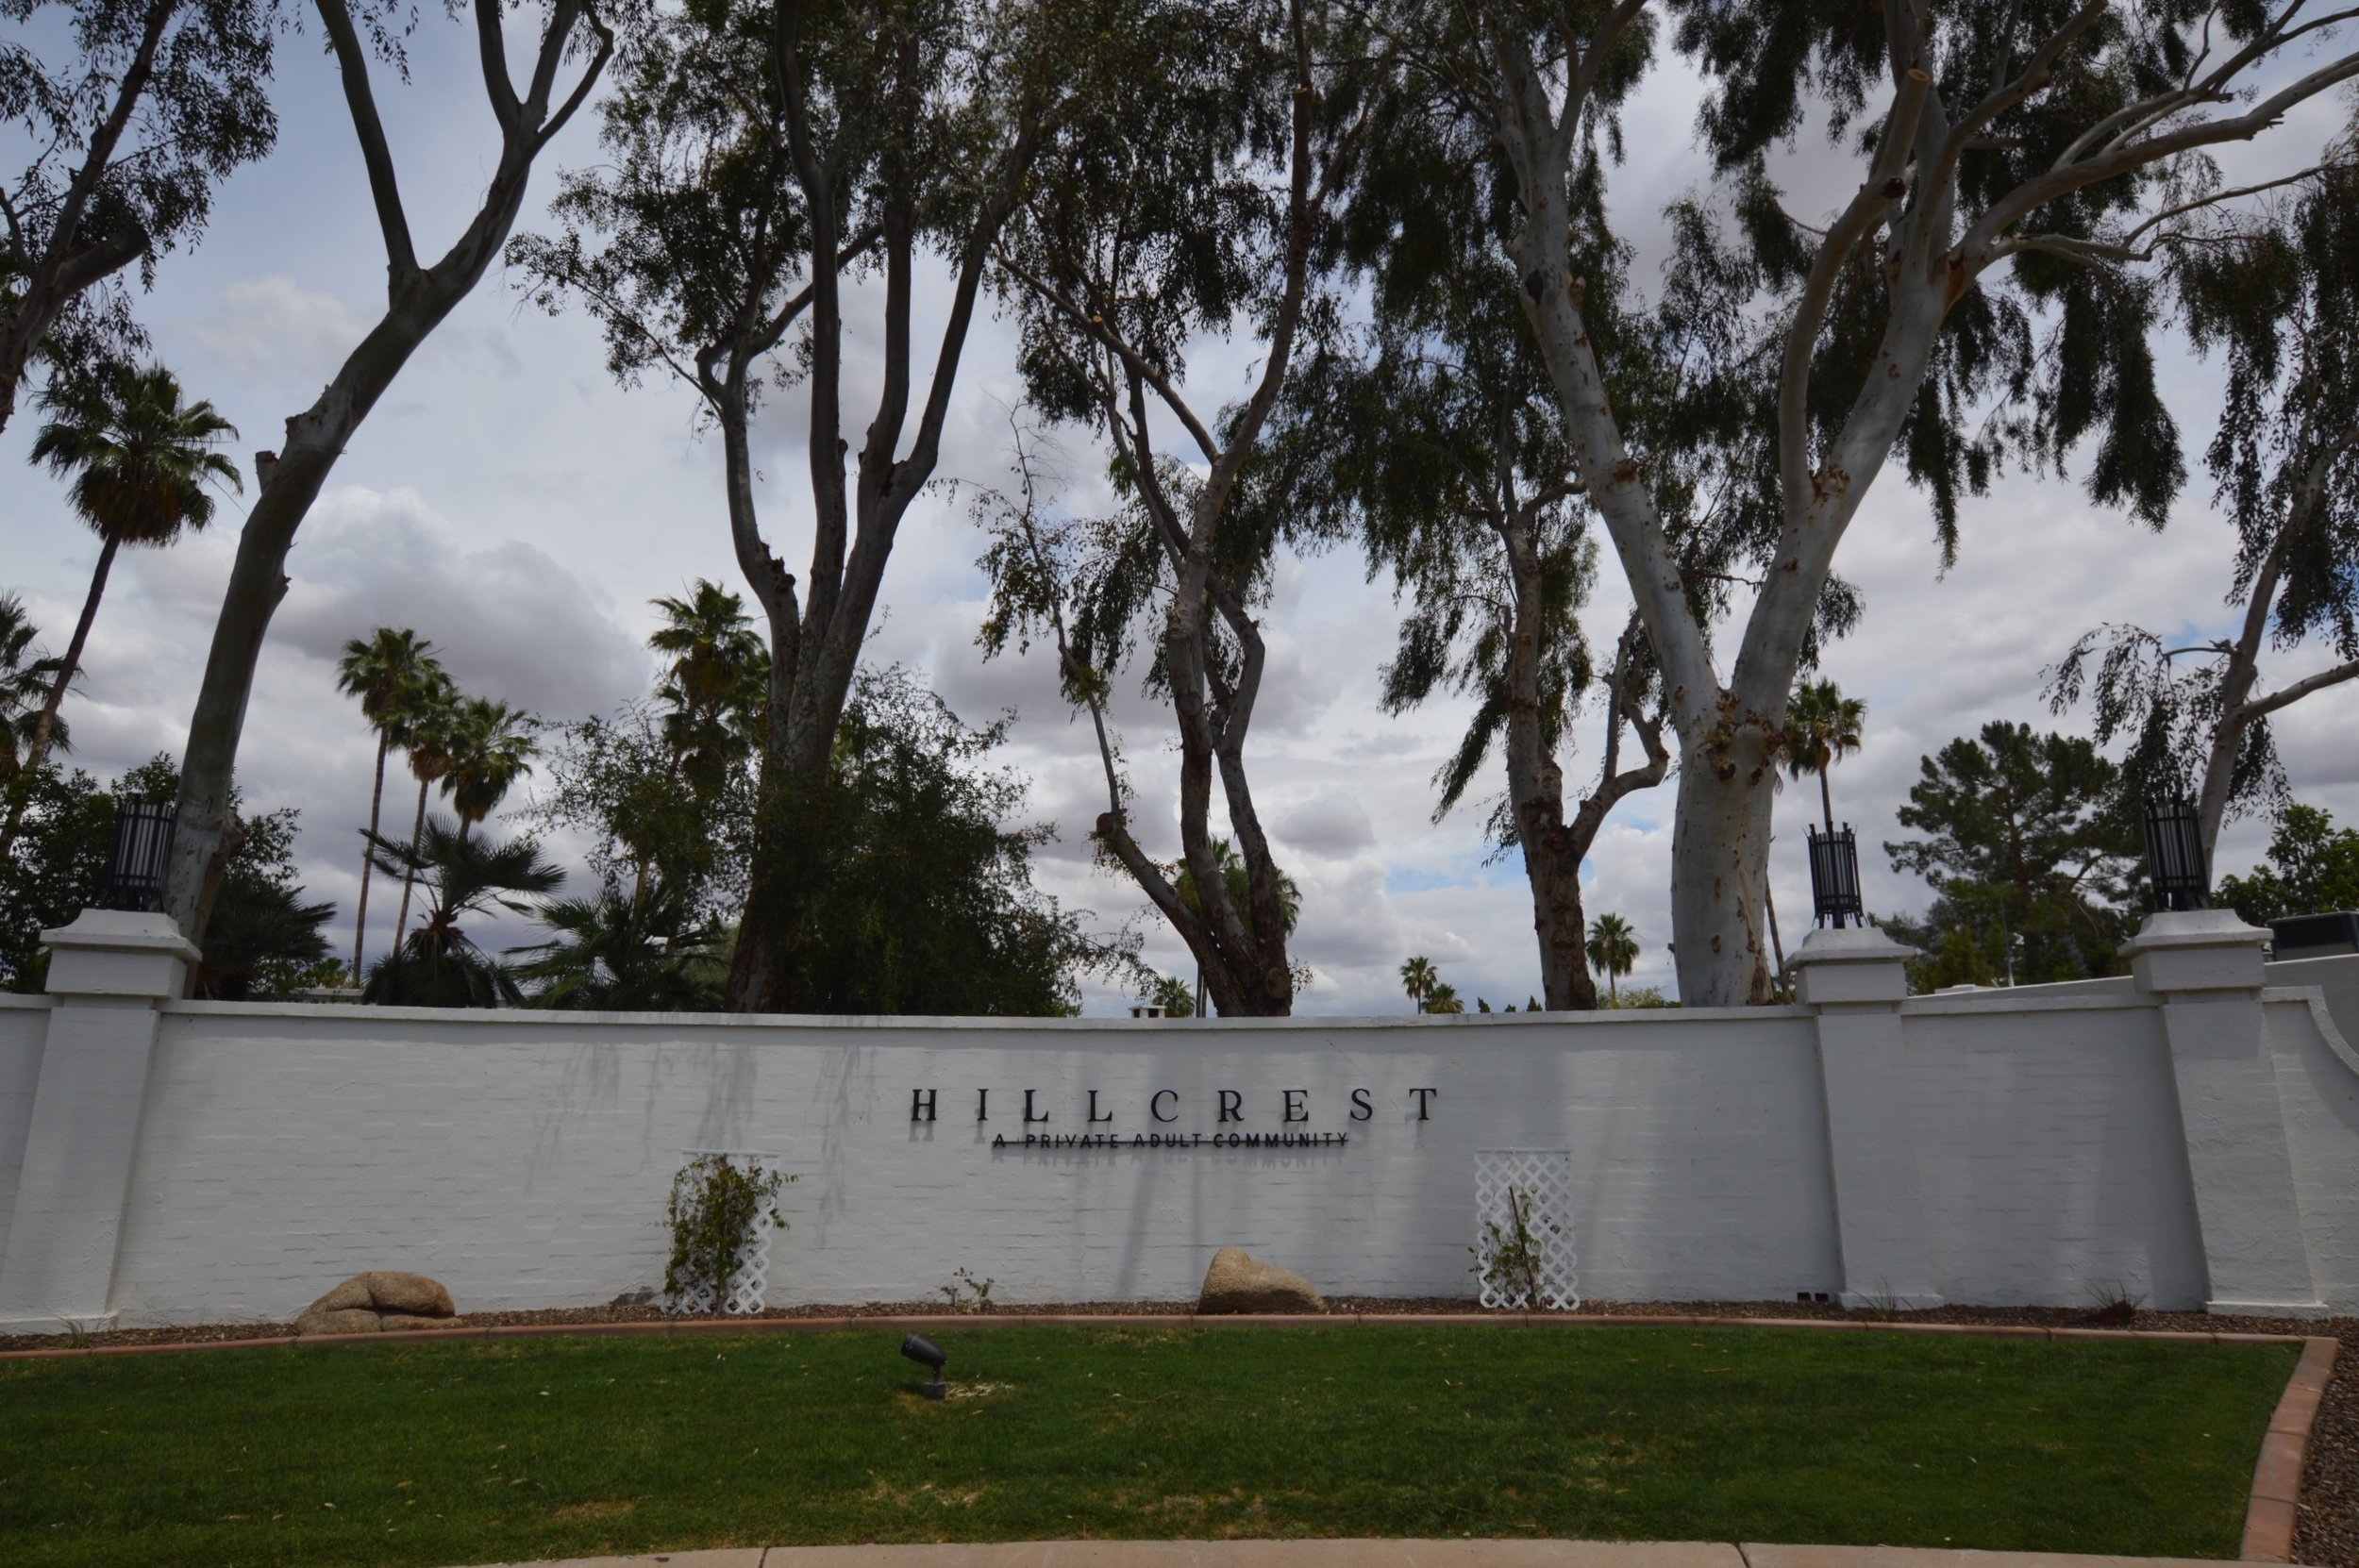 Hillcrest Private Adult Community